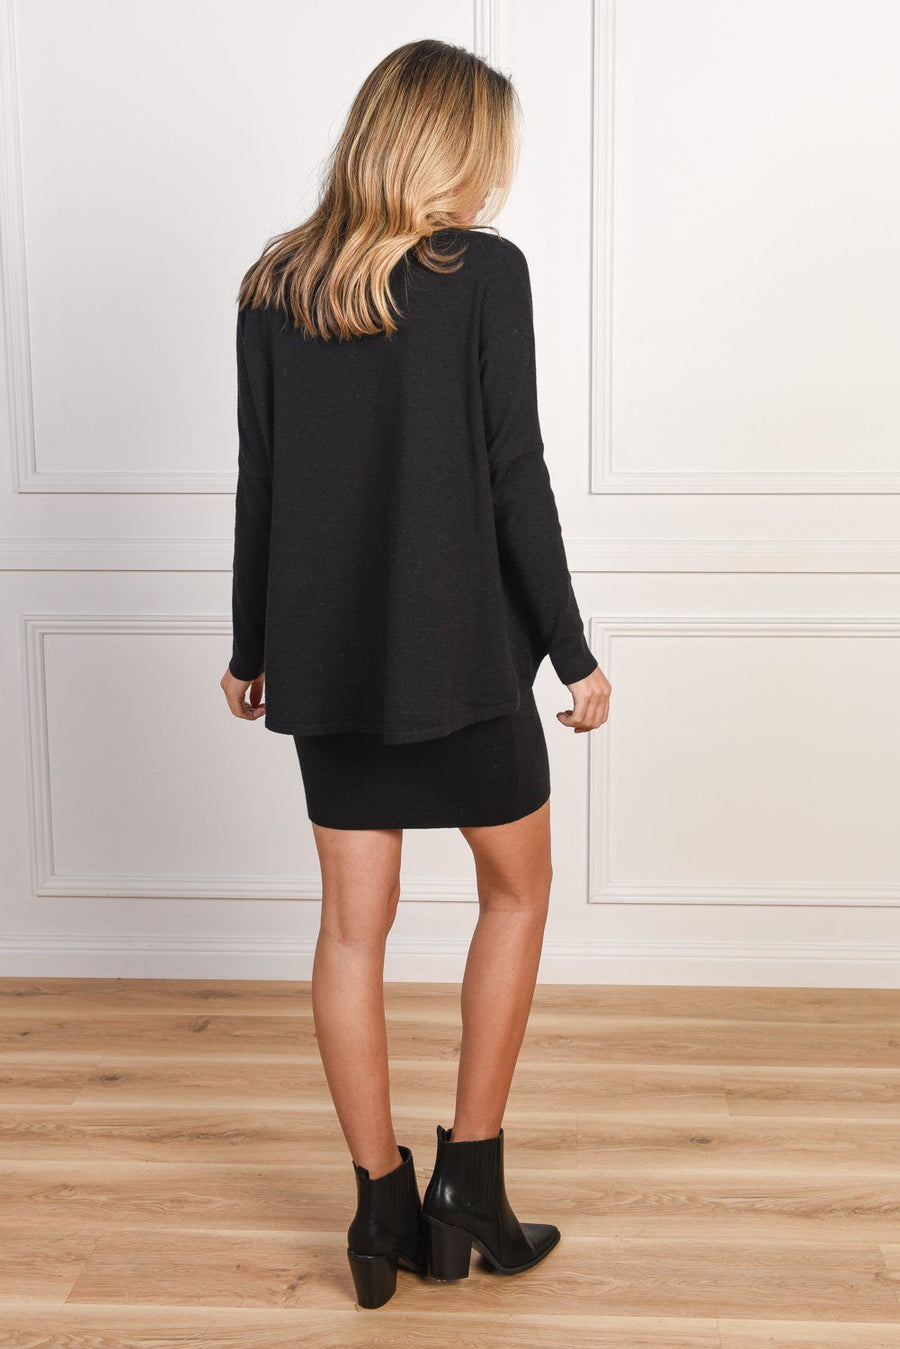 Jade Black Knit Dress - Gray Label Dress Gray Label